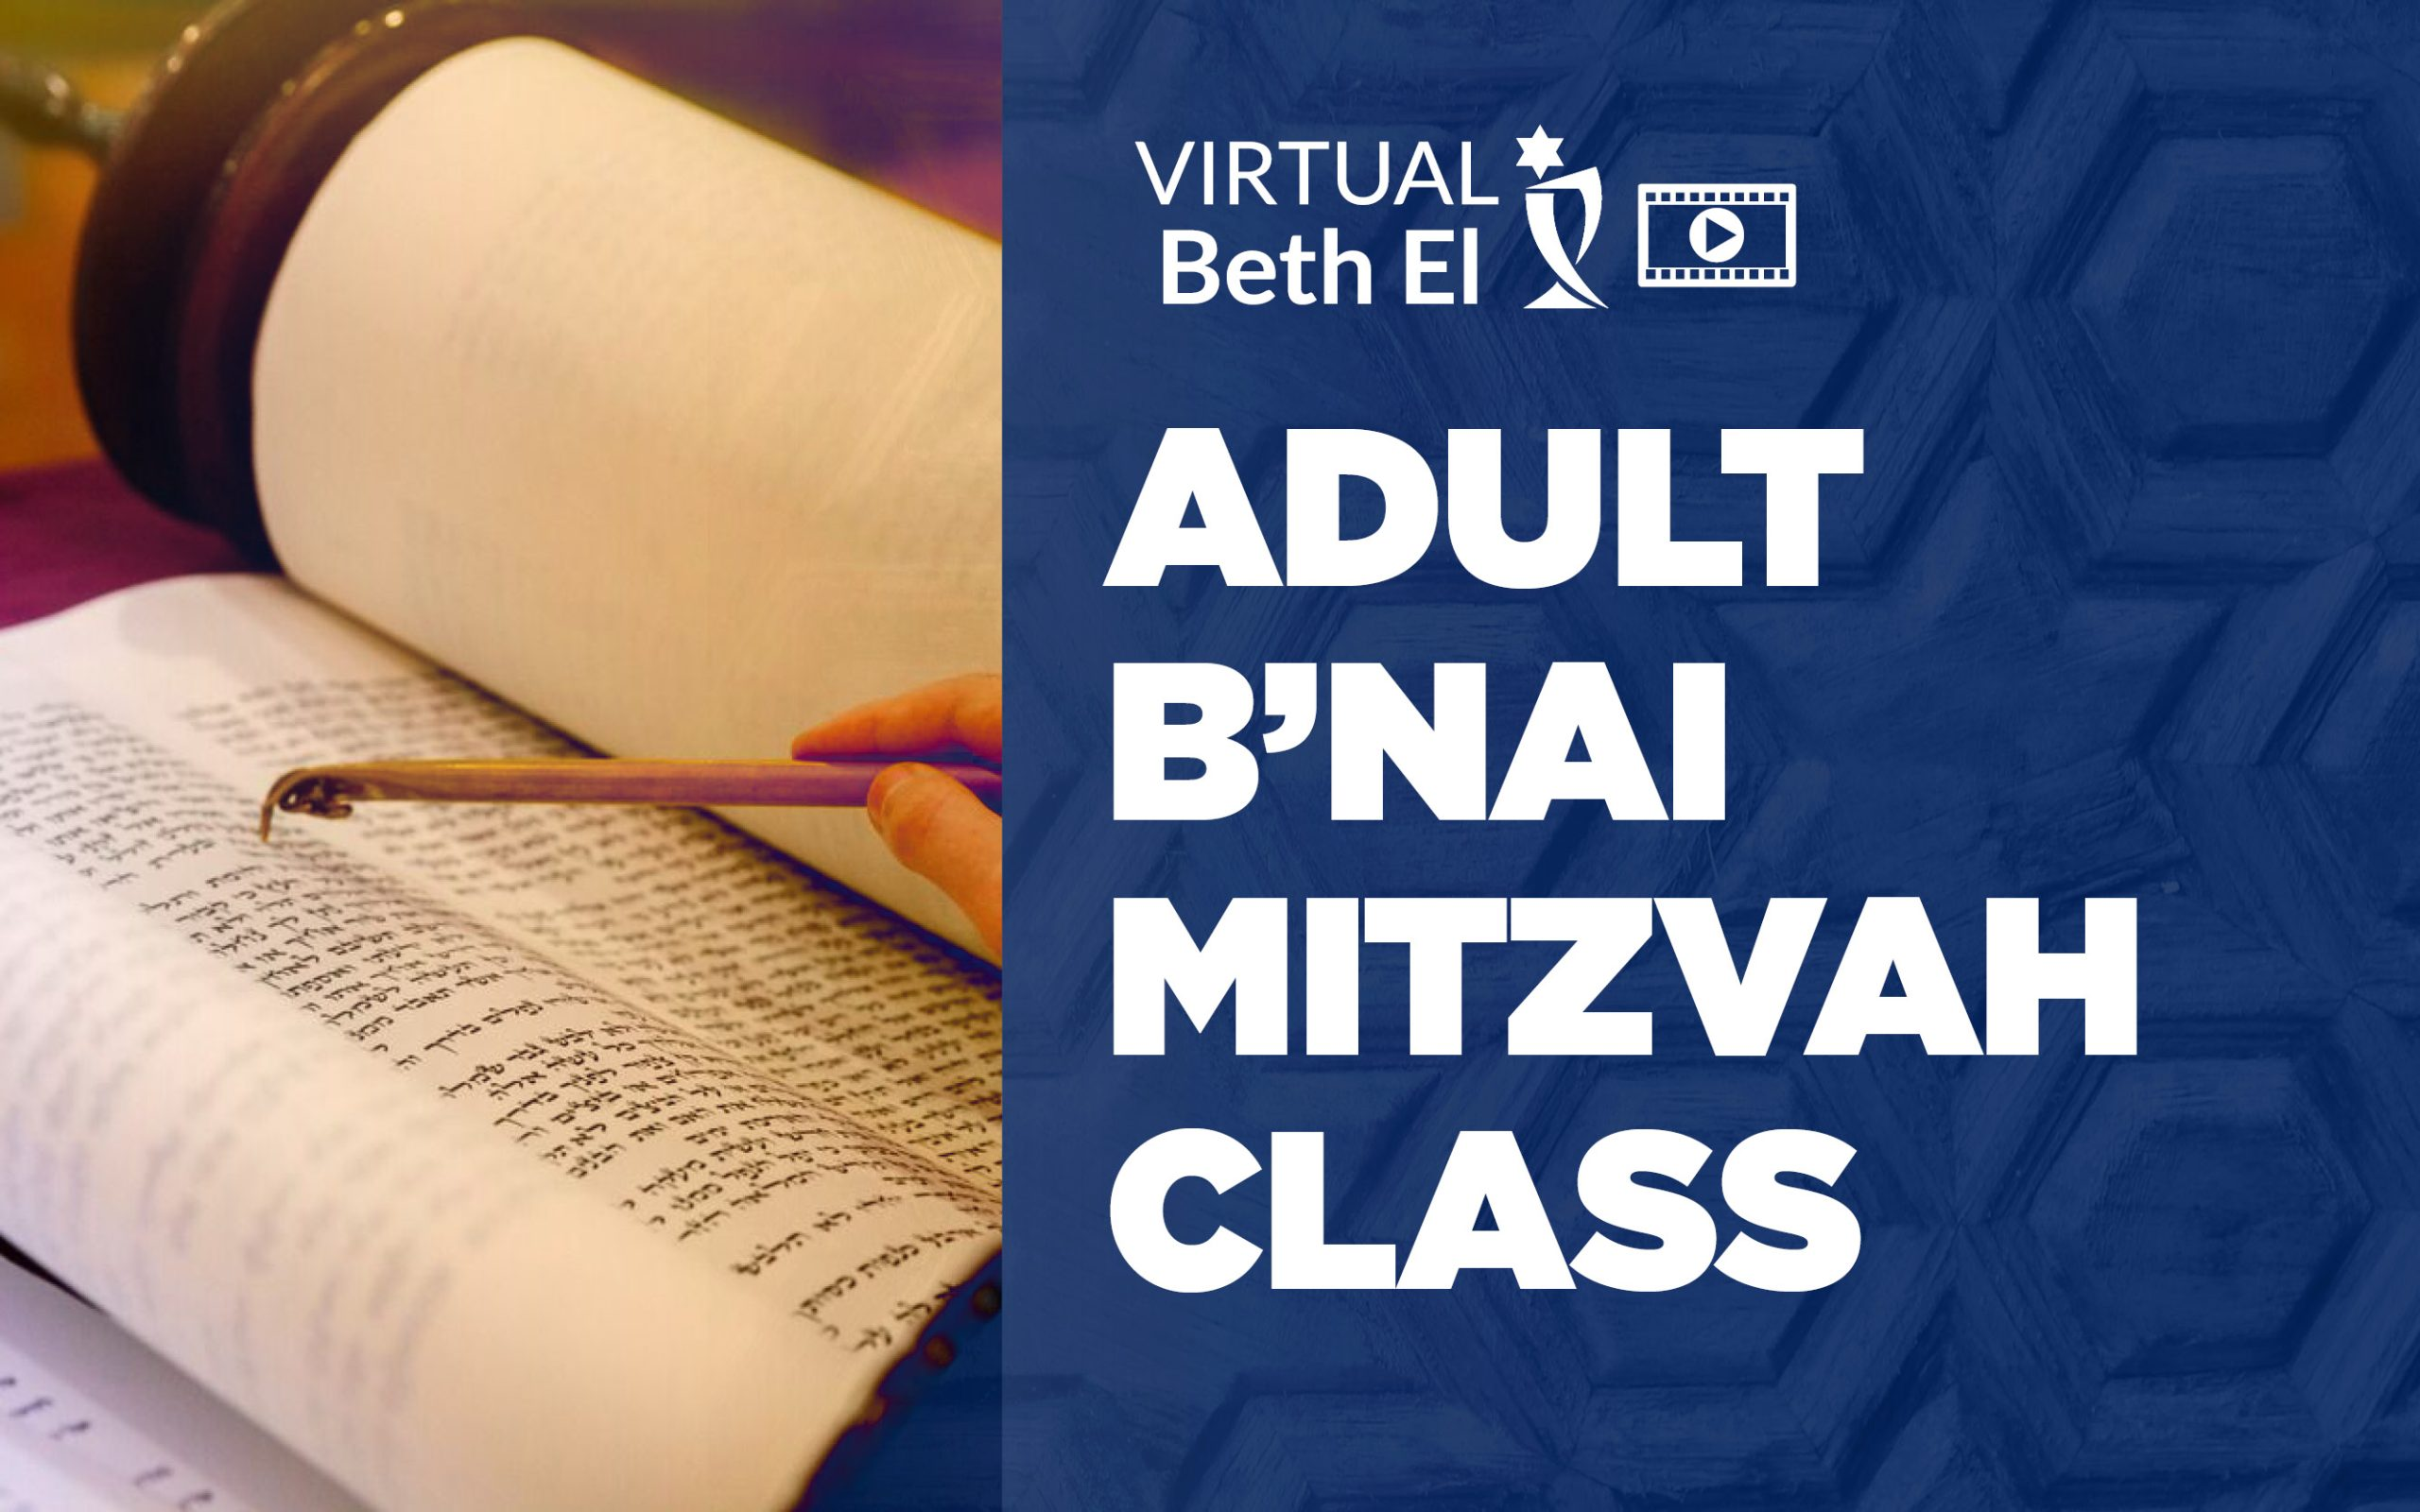 Adult B'nai Mitzvah Class Event Graphic for Temple Beth El - Virtual